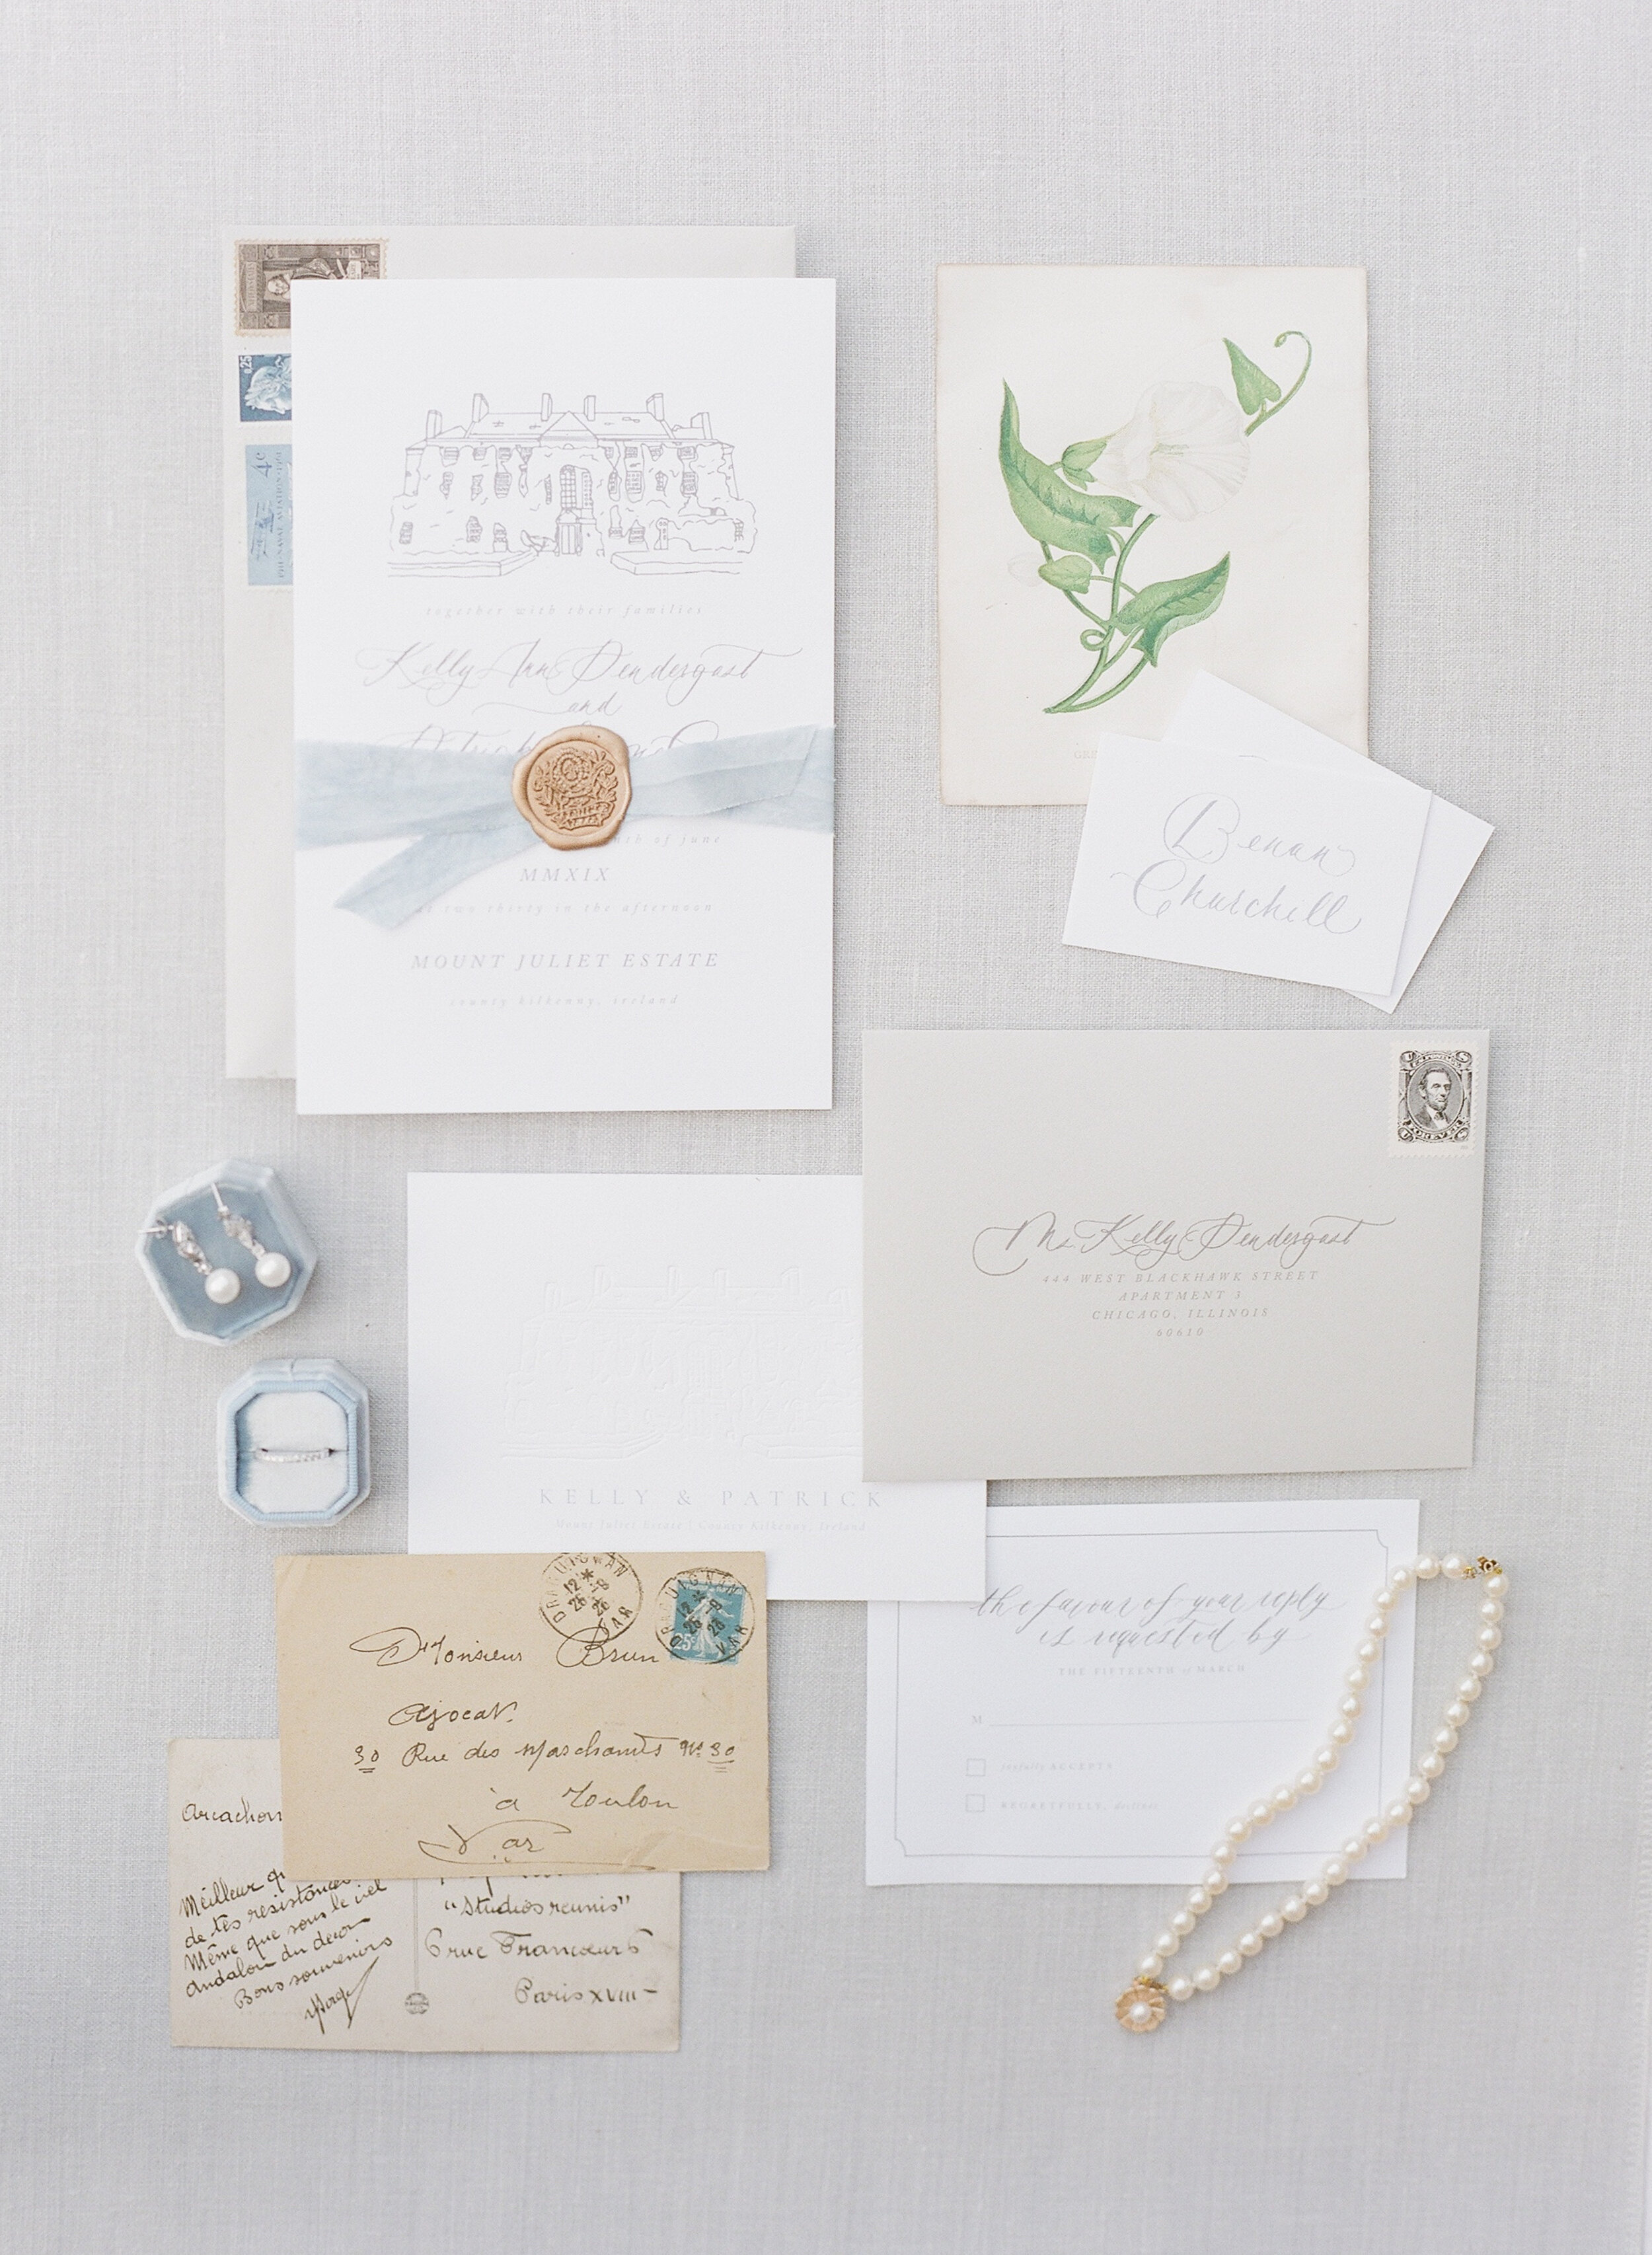 Bella-Botanca-Flowers-Molly-Carr-Photography-Details-Paper-Products21.JPG